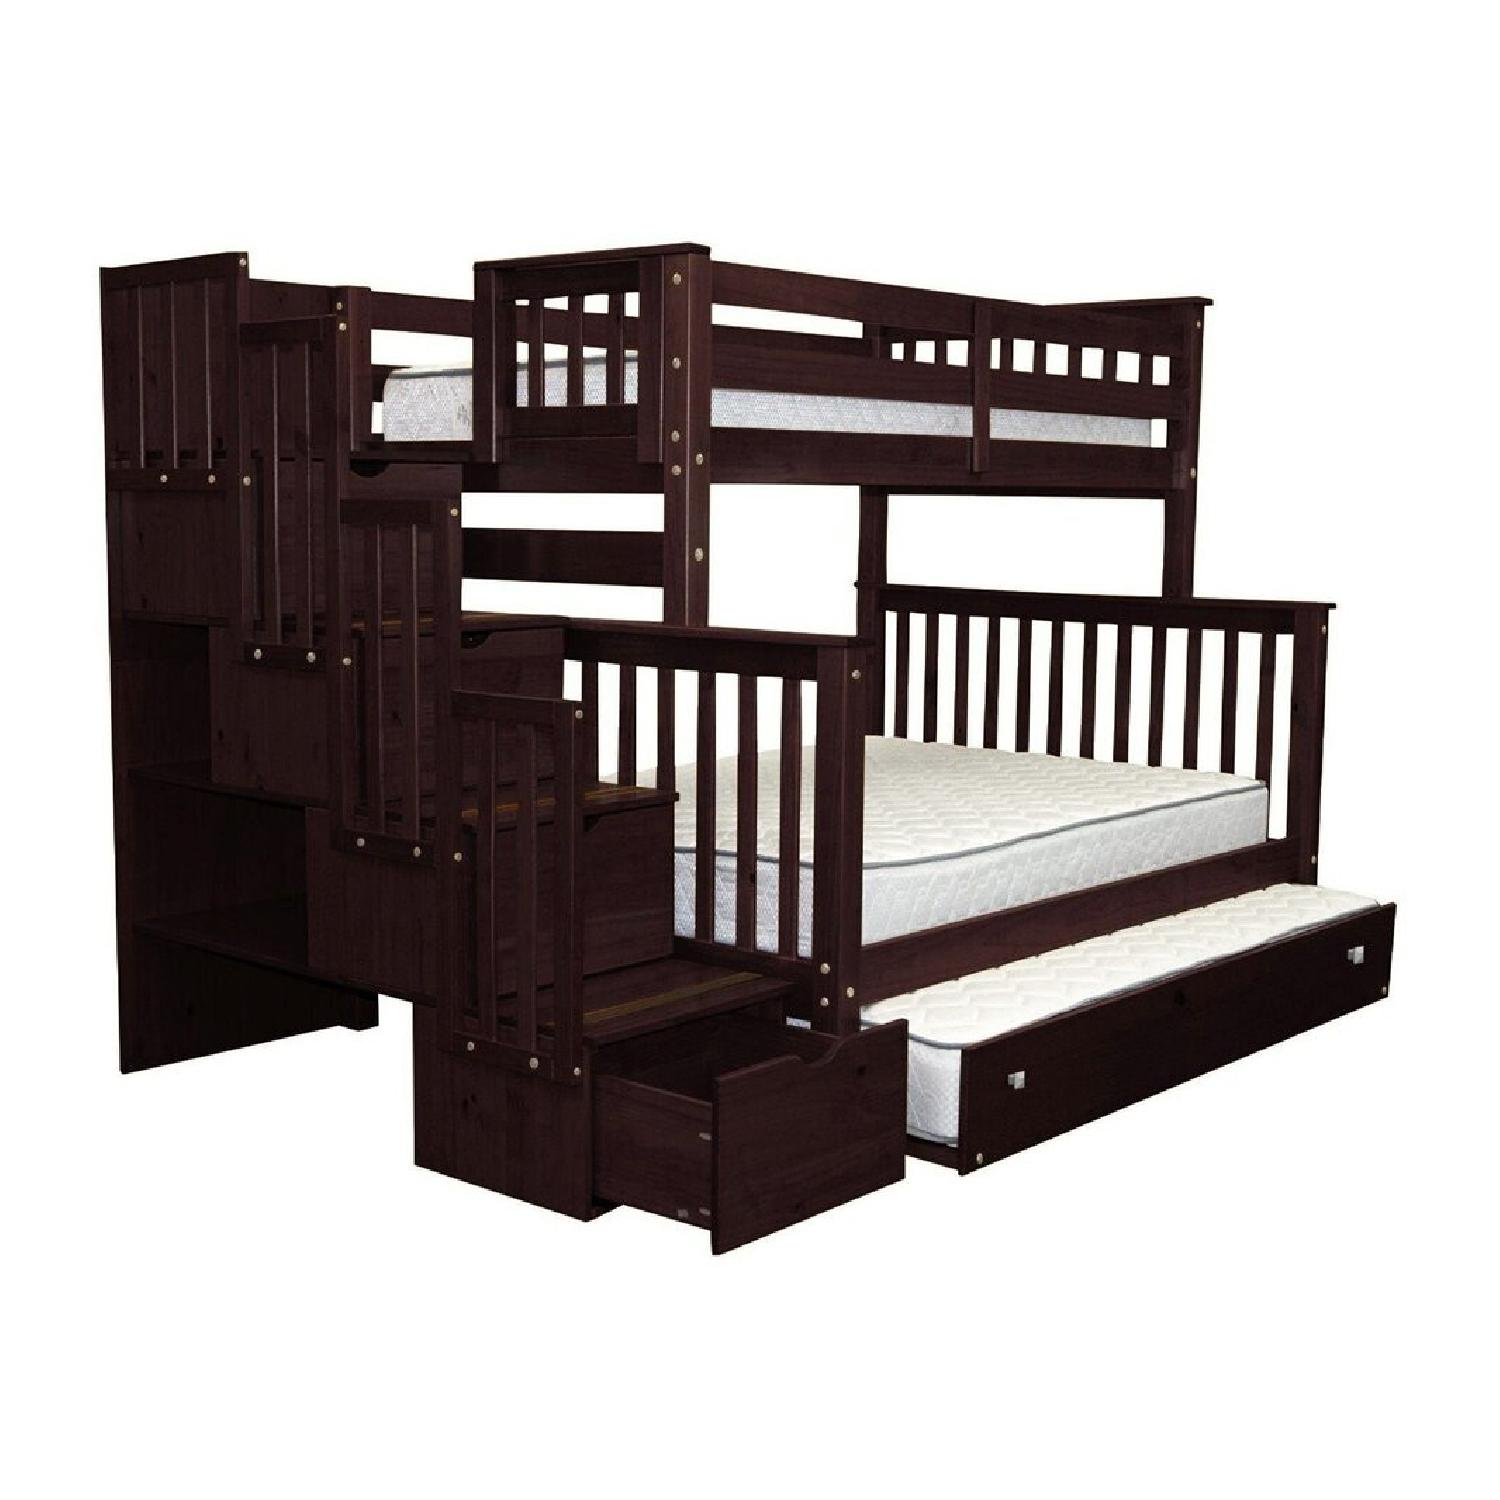 Wayfair Solid Wood Bunk Bed with Trundle, Storage - image-7